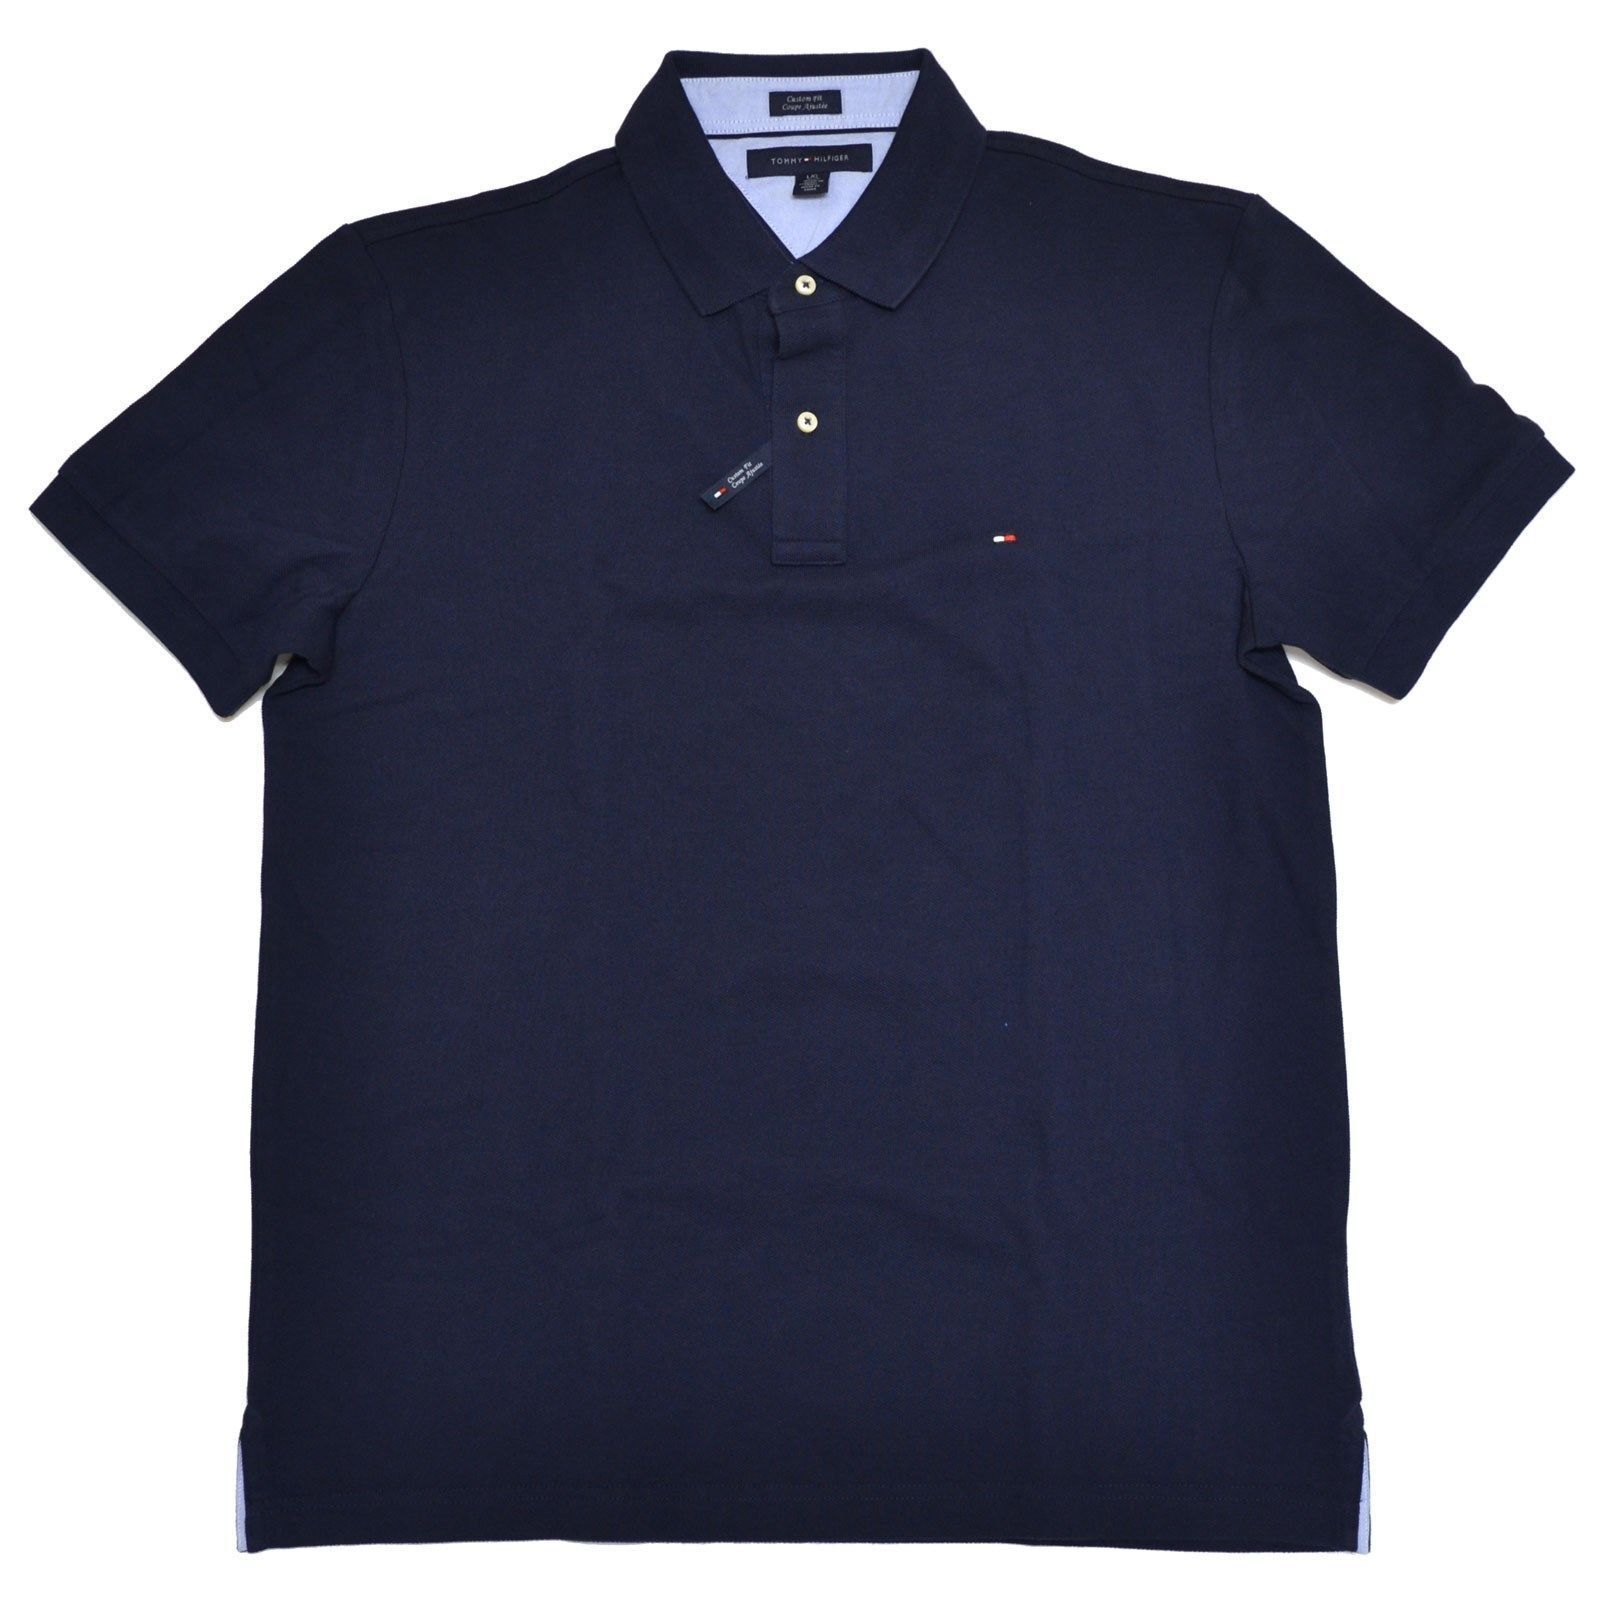 tommy hilfiger poloshirt polo shirt darkblue size s xxxl. Black Bedroom Furniture Sets. Home Design Ideas